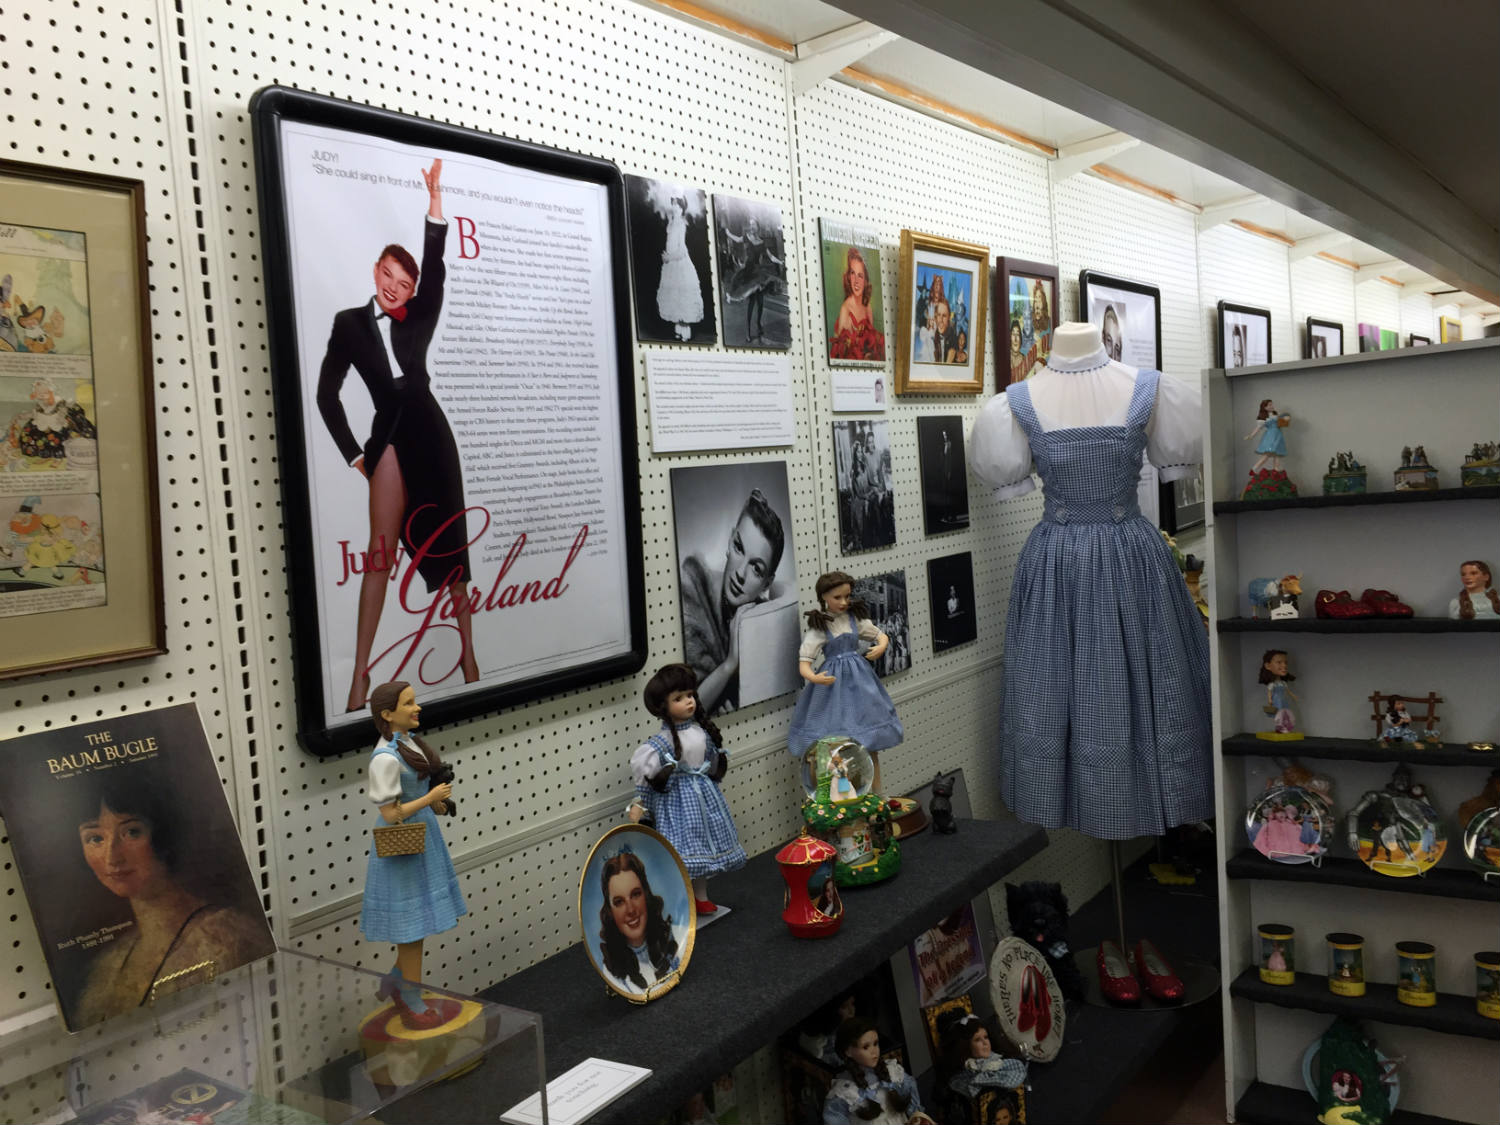 Judy Garland Display at the All Things Oz Museum in Chittenango, New York